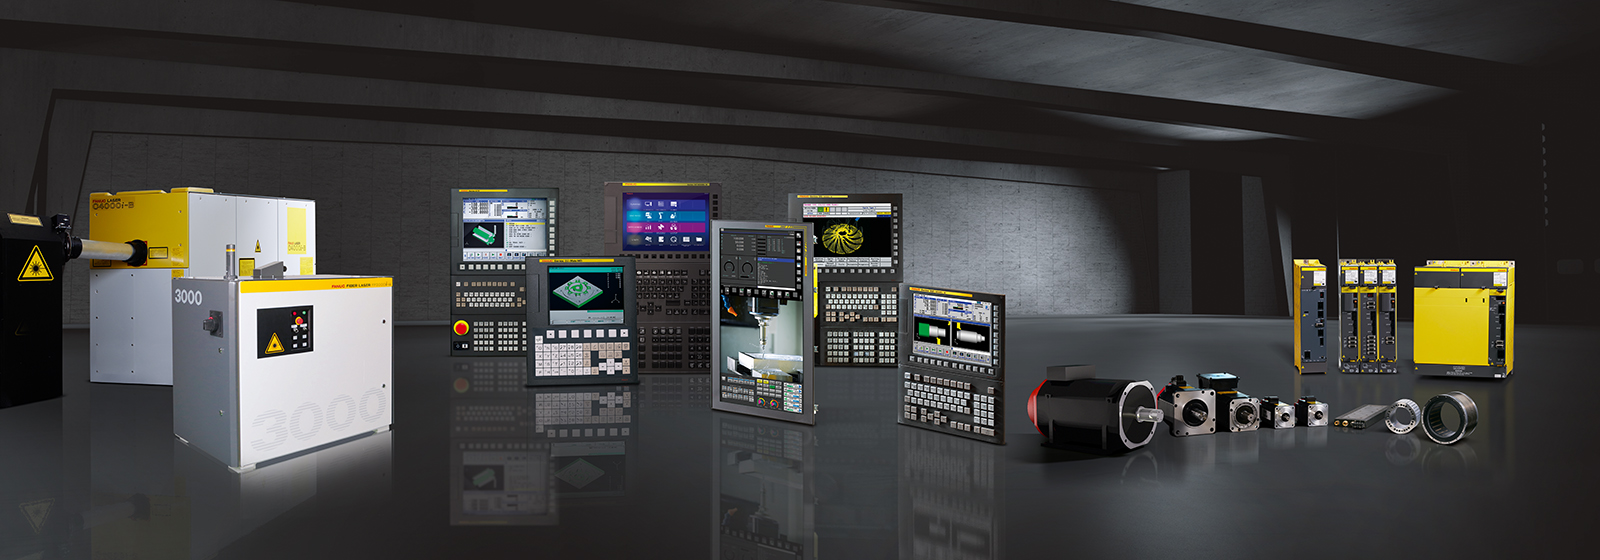 Fanuc CNC system range overview with laser, controls and drive systems